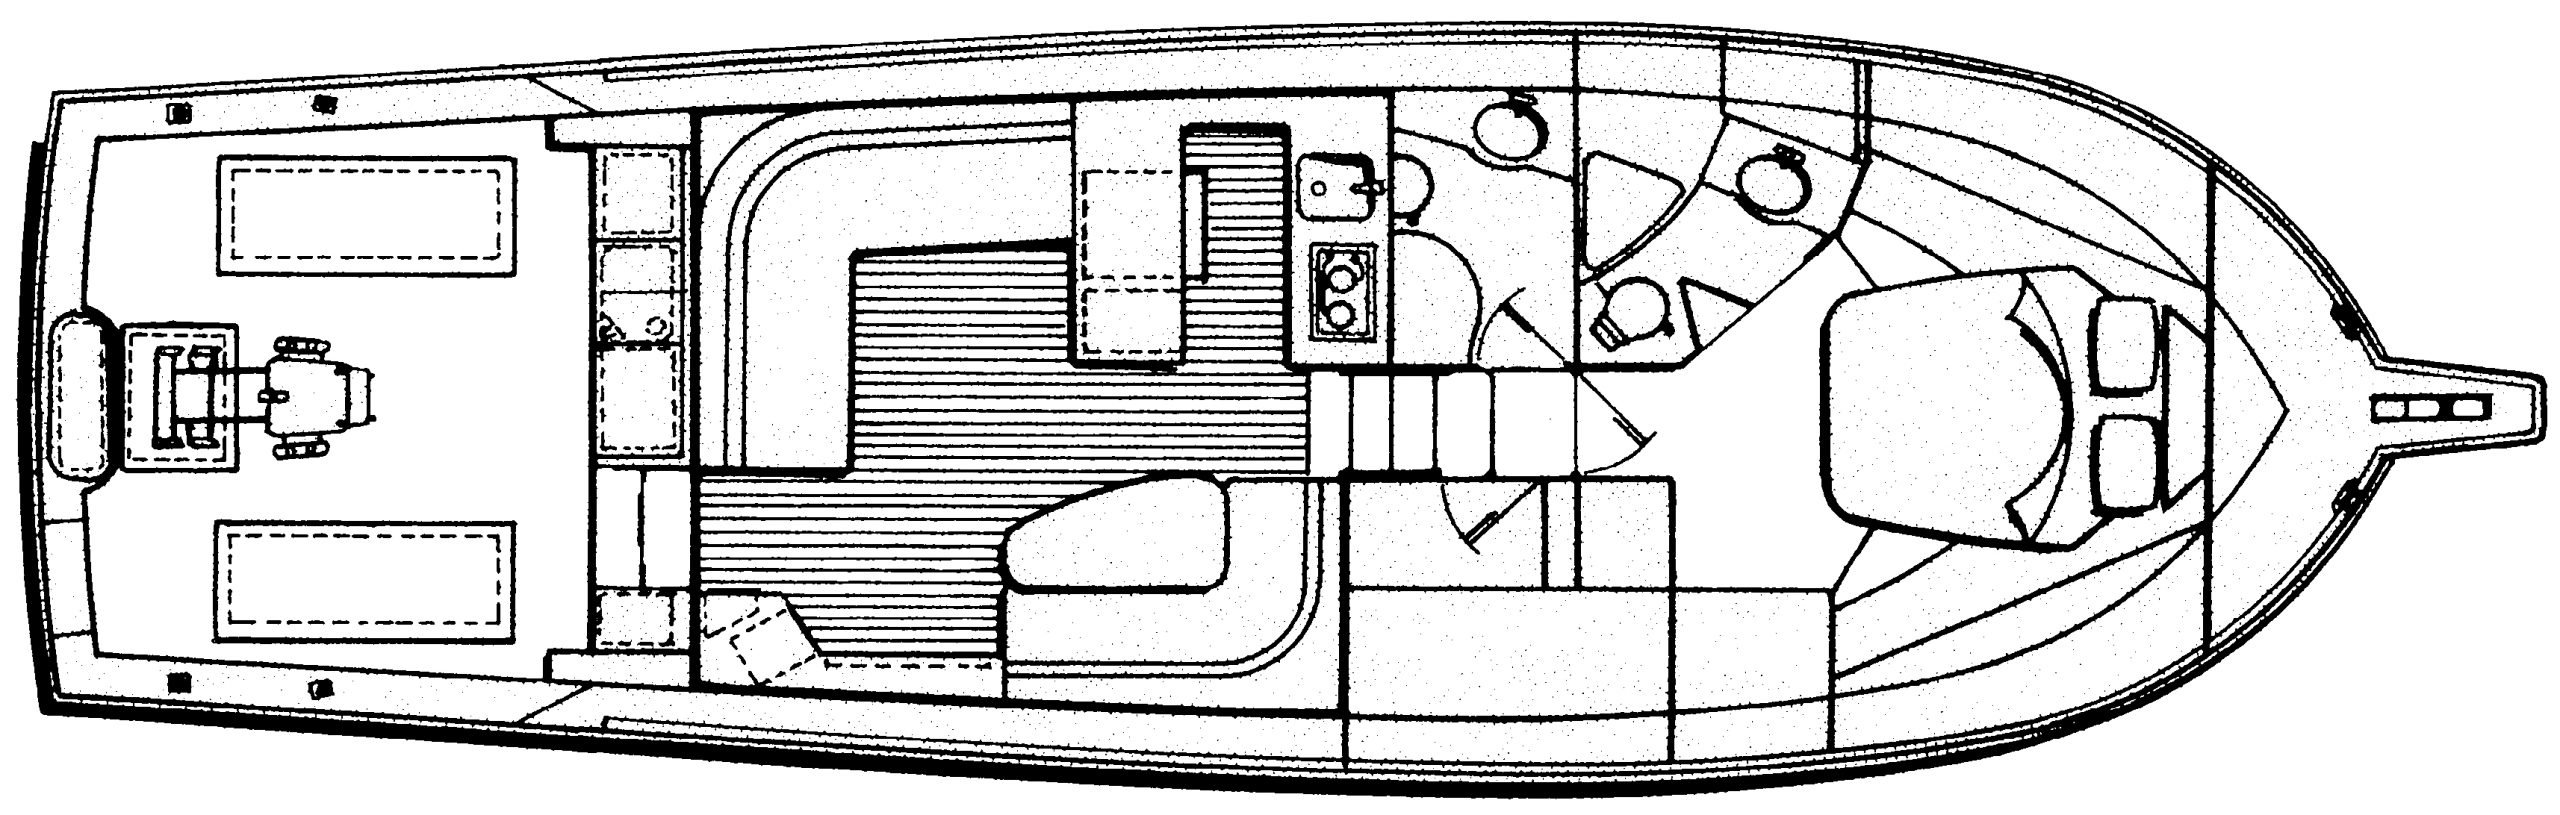 47-48 Flybridge Floor Plan 2